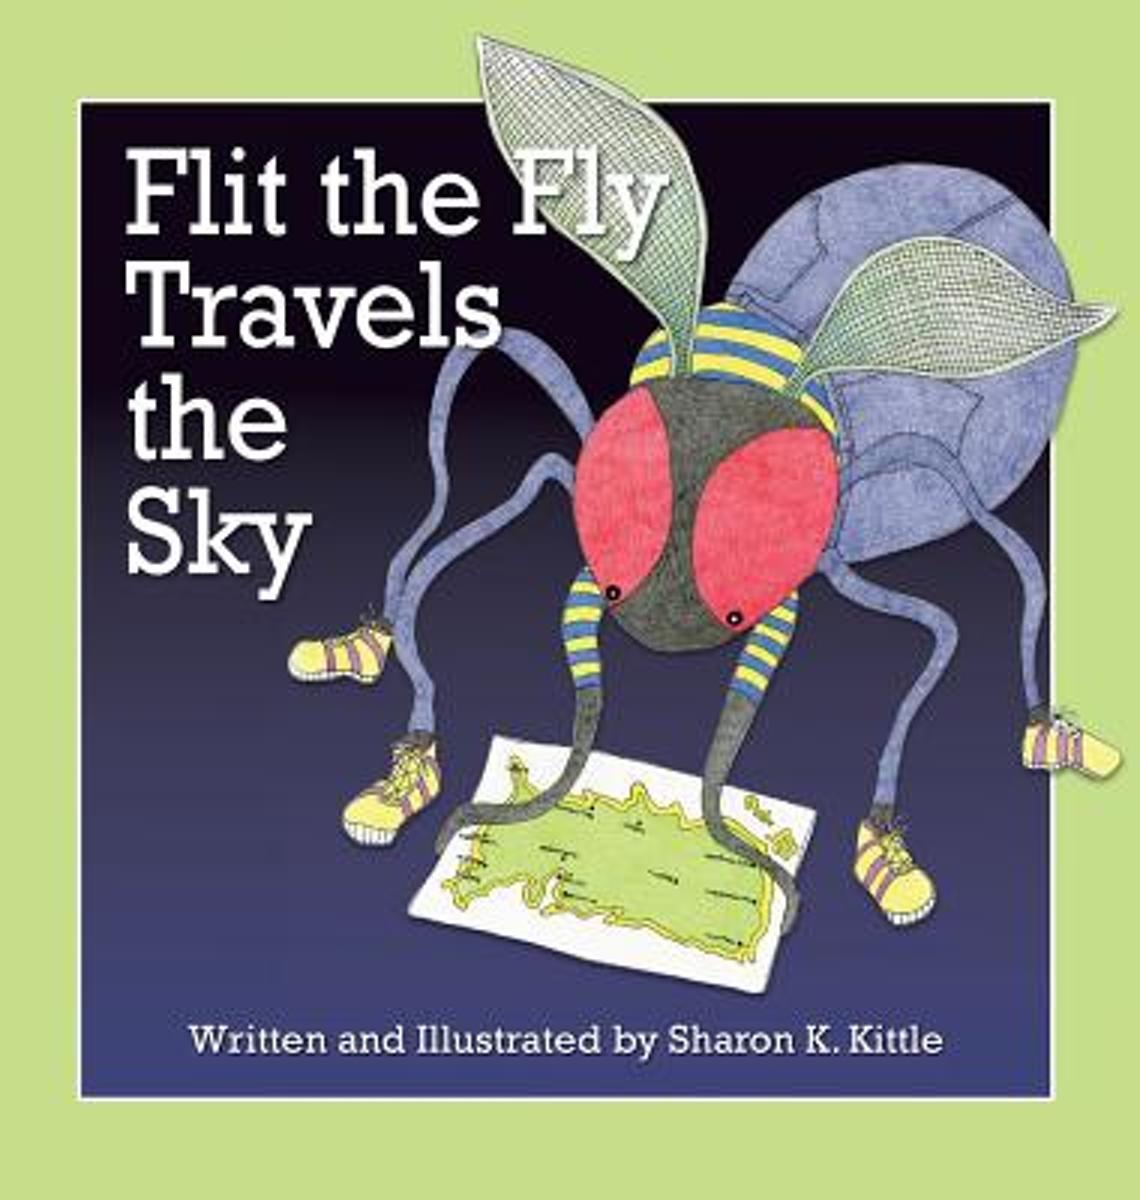 Flit the Fly Travels the Sky